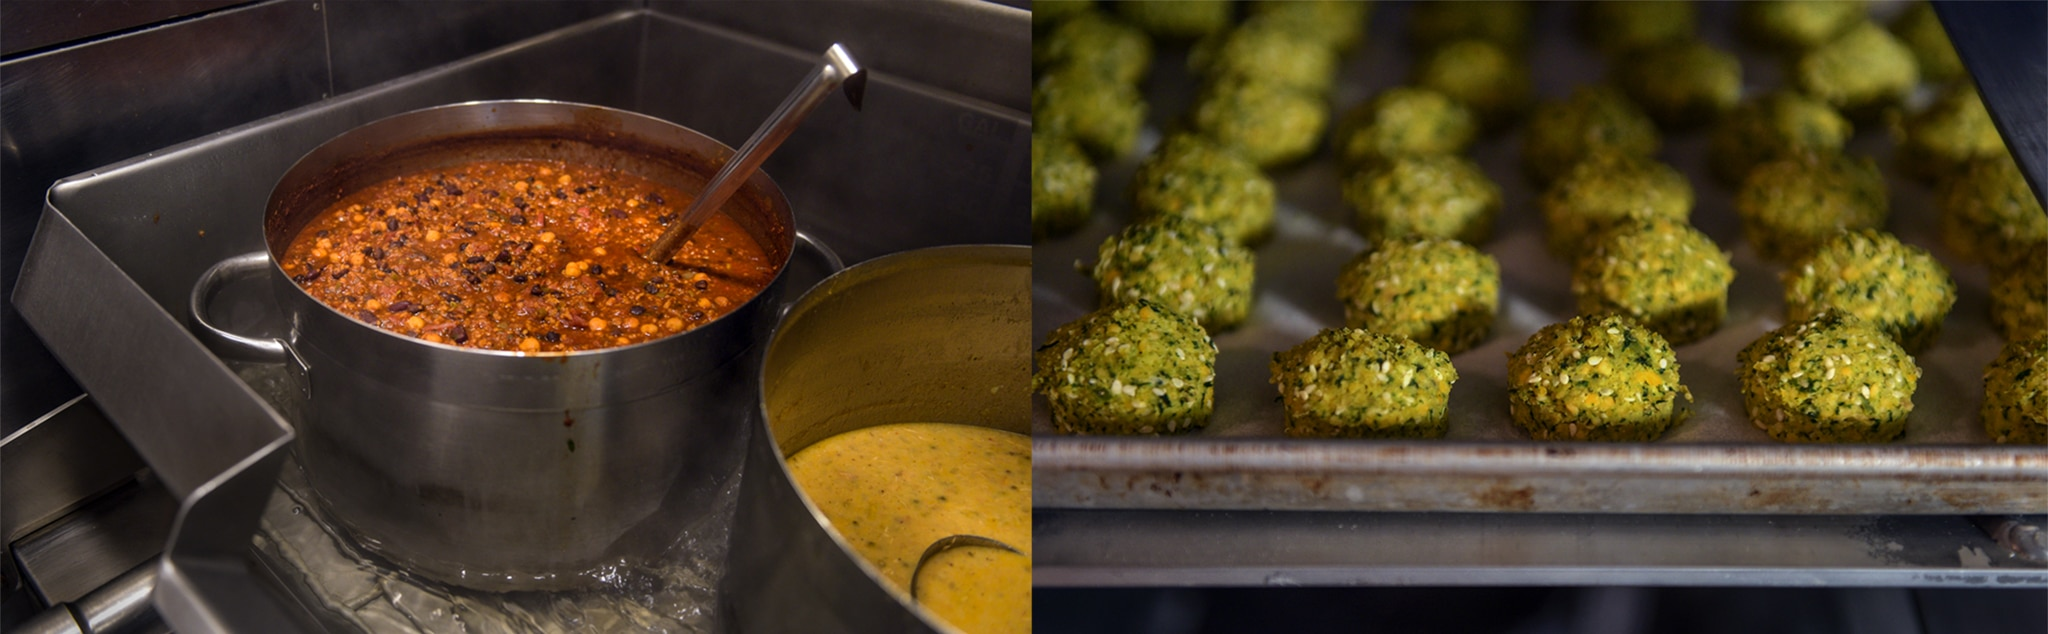 Side-by-side photos of large pot of chili and tray of falafel balls (© Carol Guzy)